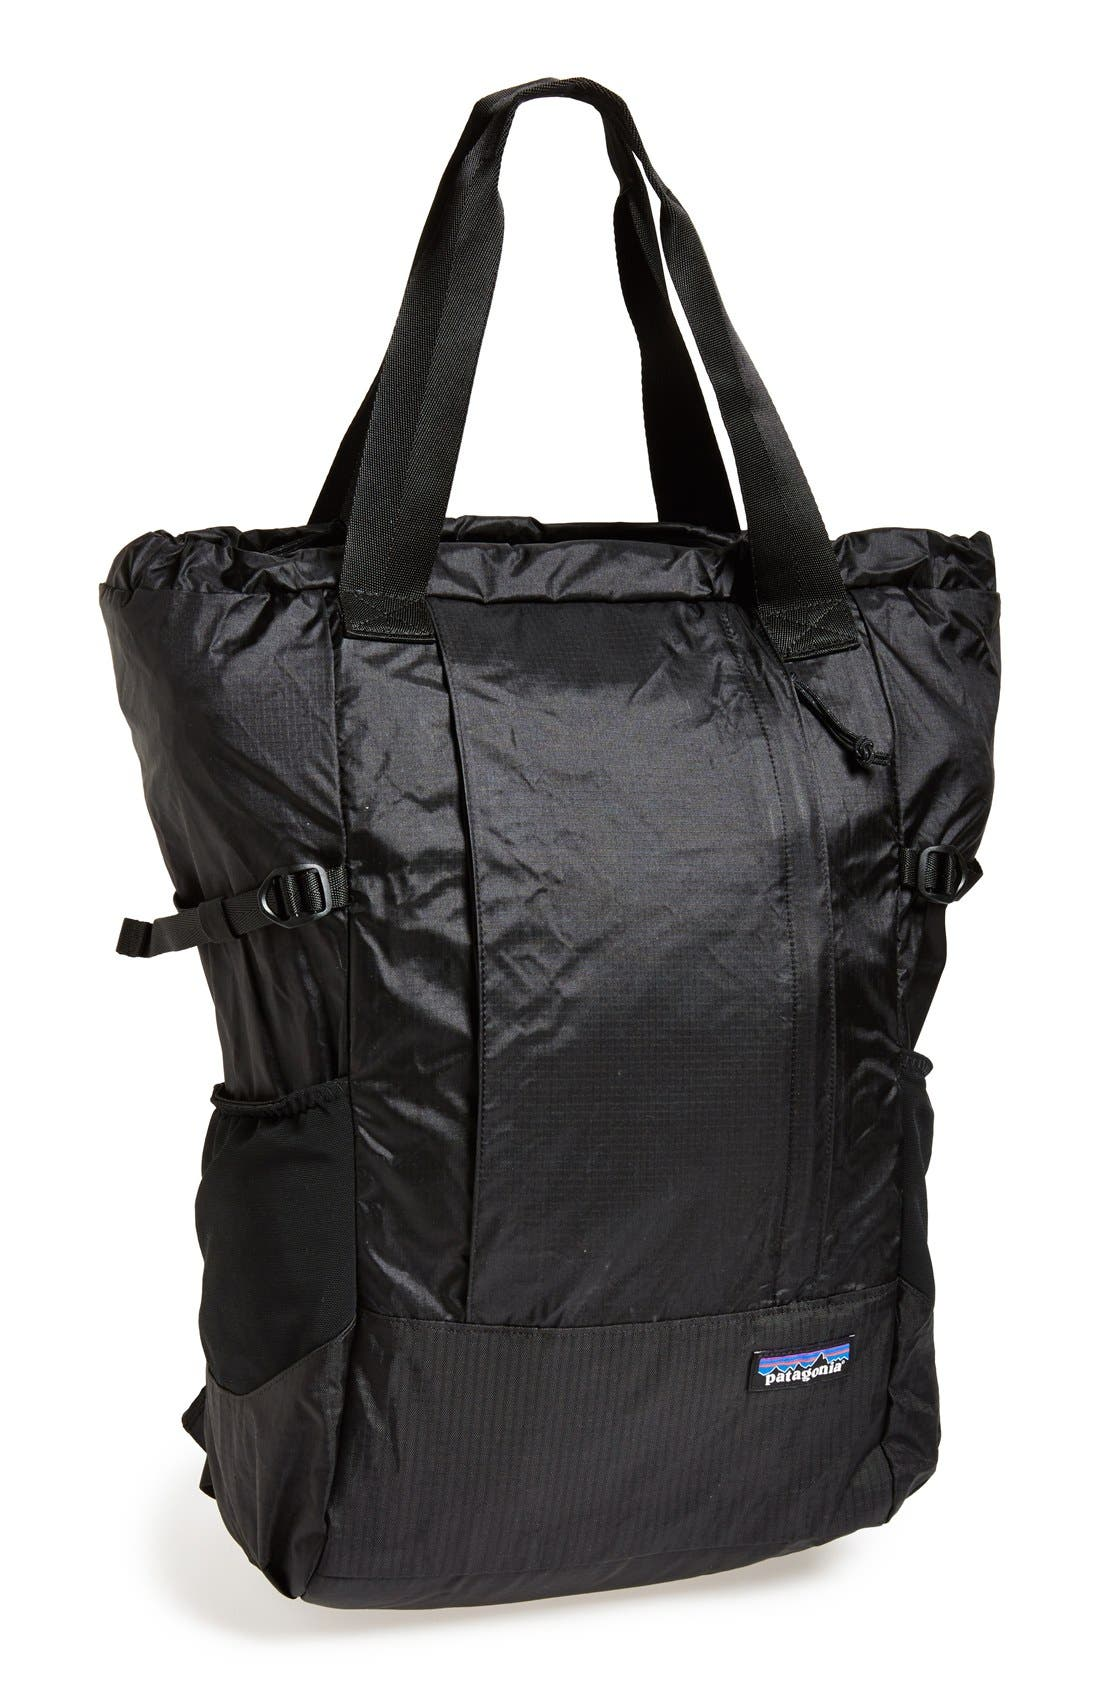 Lightweight Travel Tote Pack,                             Main thumbnail 1, color,                             Black